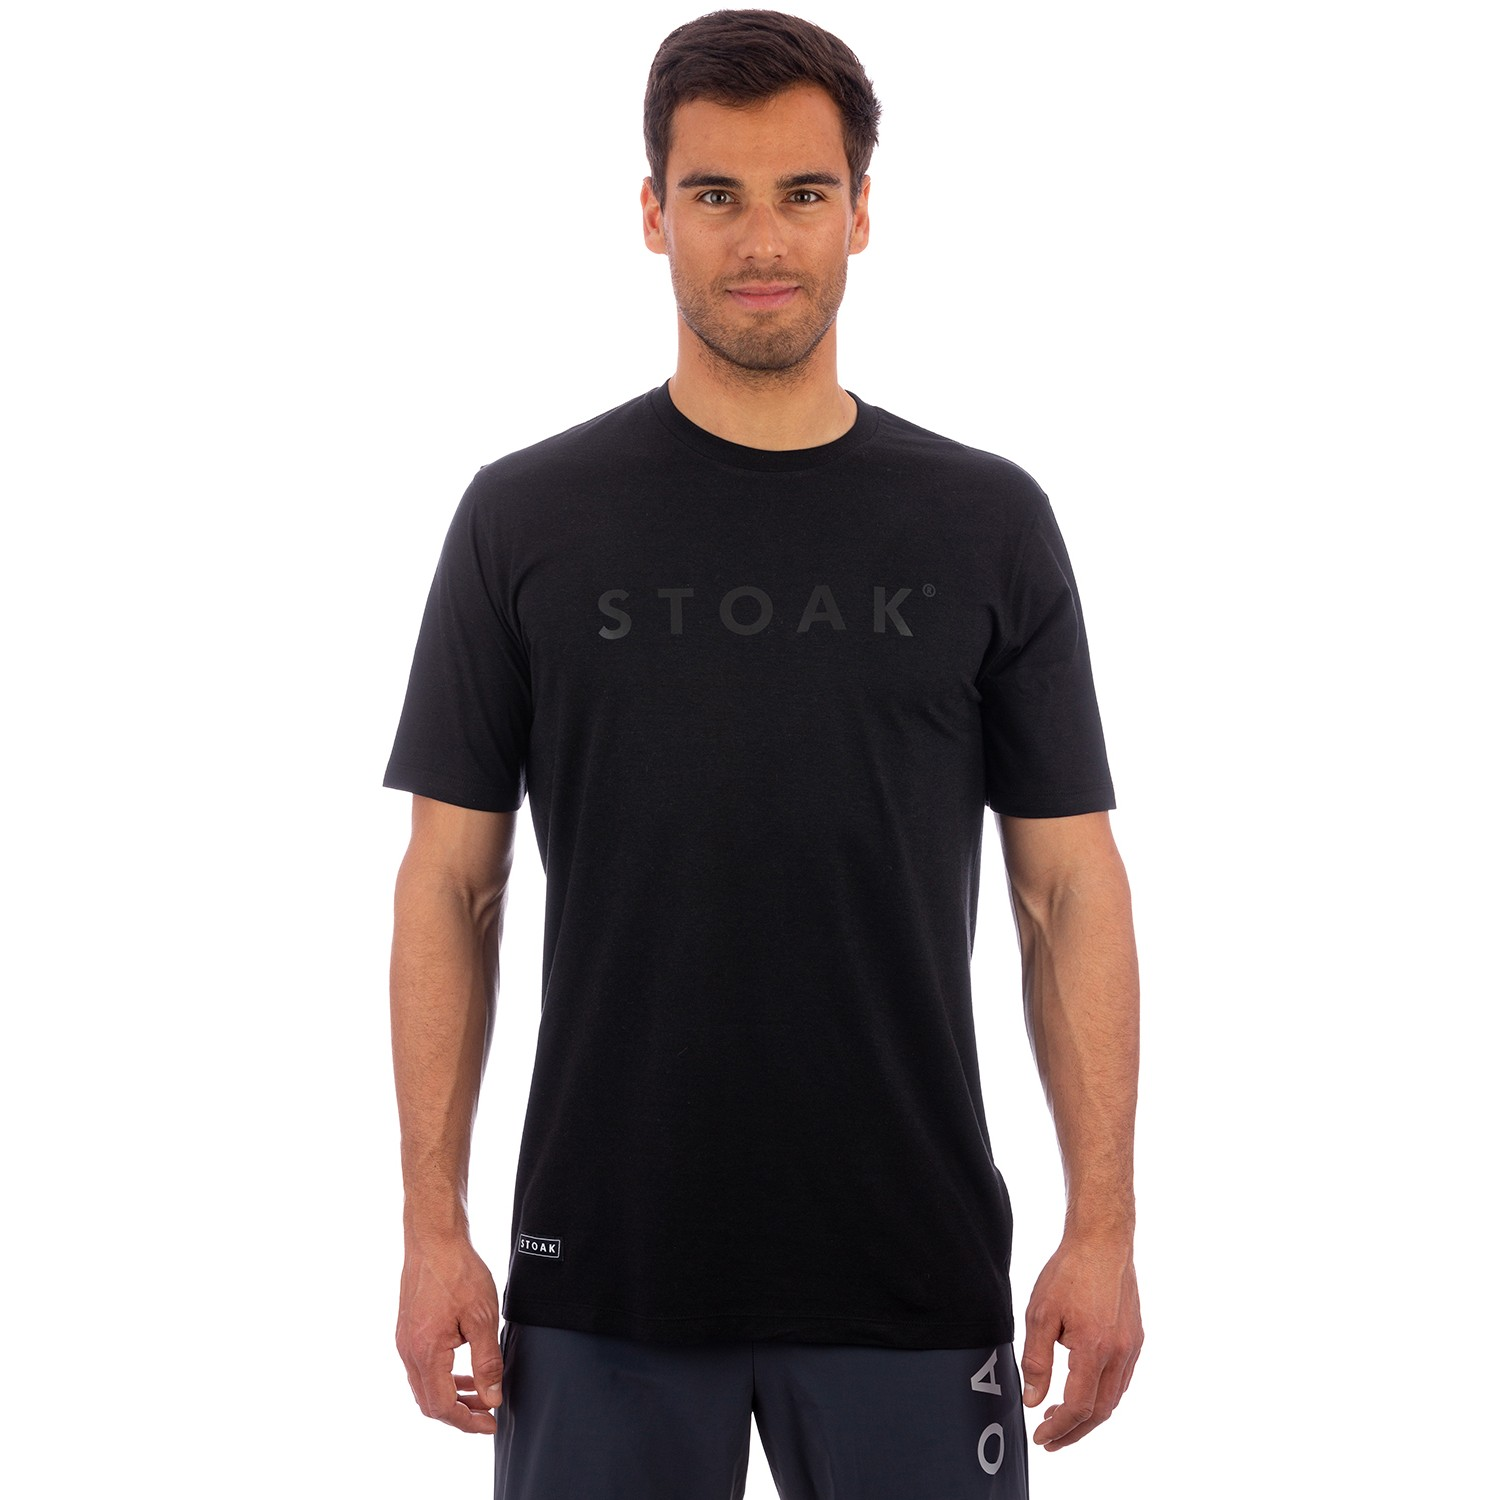 STOAK DOUBLE CARBON T-Shirt